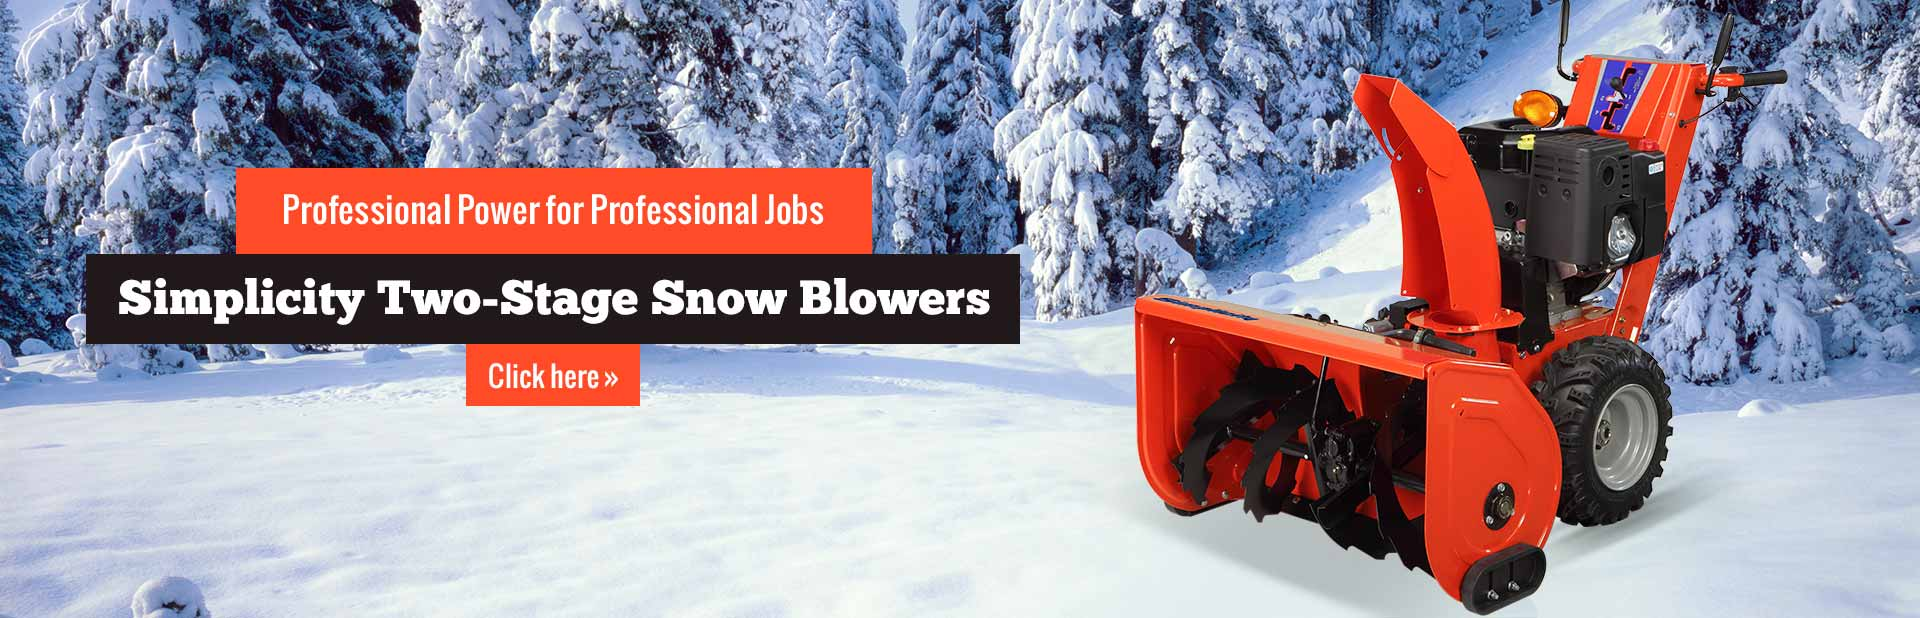 Simplicity two-stage snow blowers provide professional power for professional jobs! Click here to vi